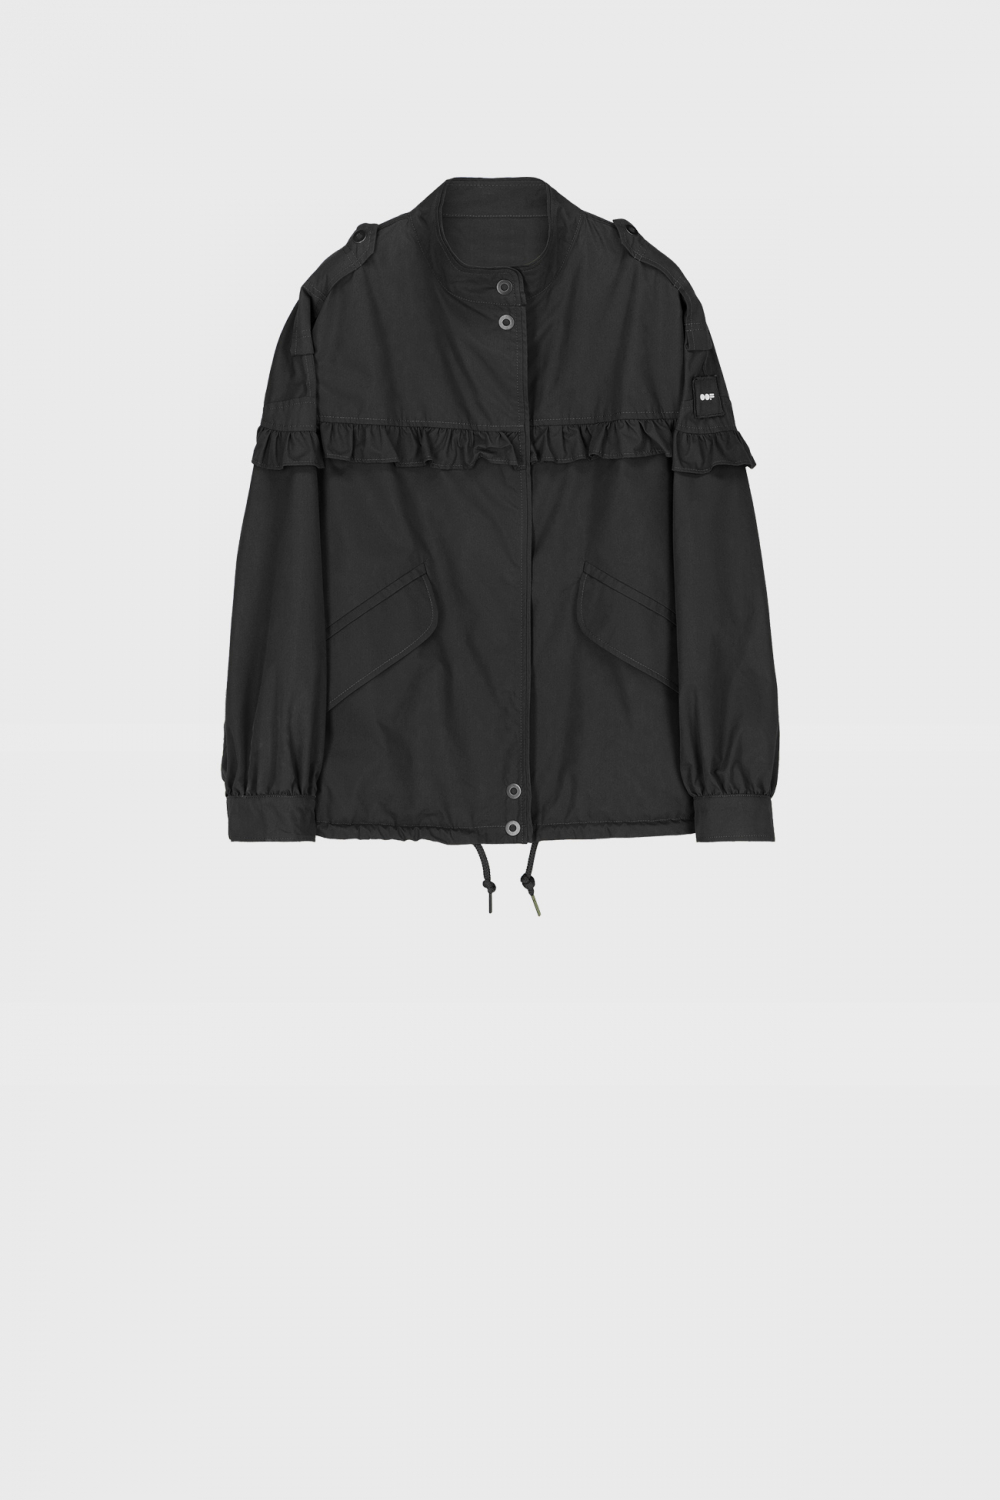 Short oversized blouson with ruches and drawstring in black